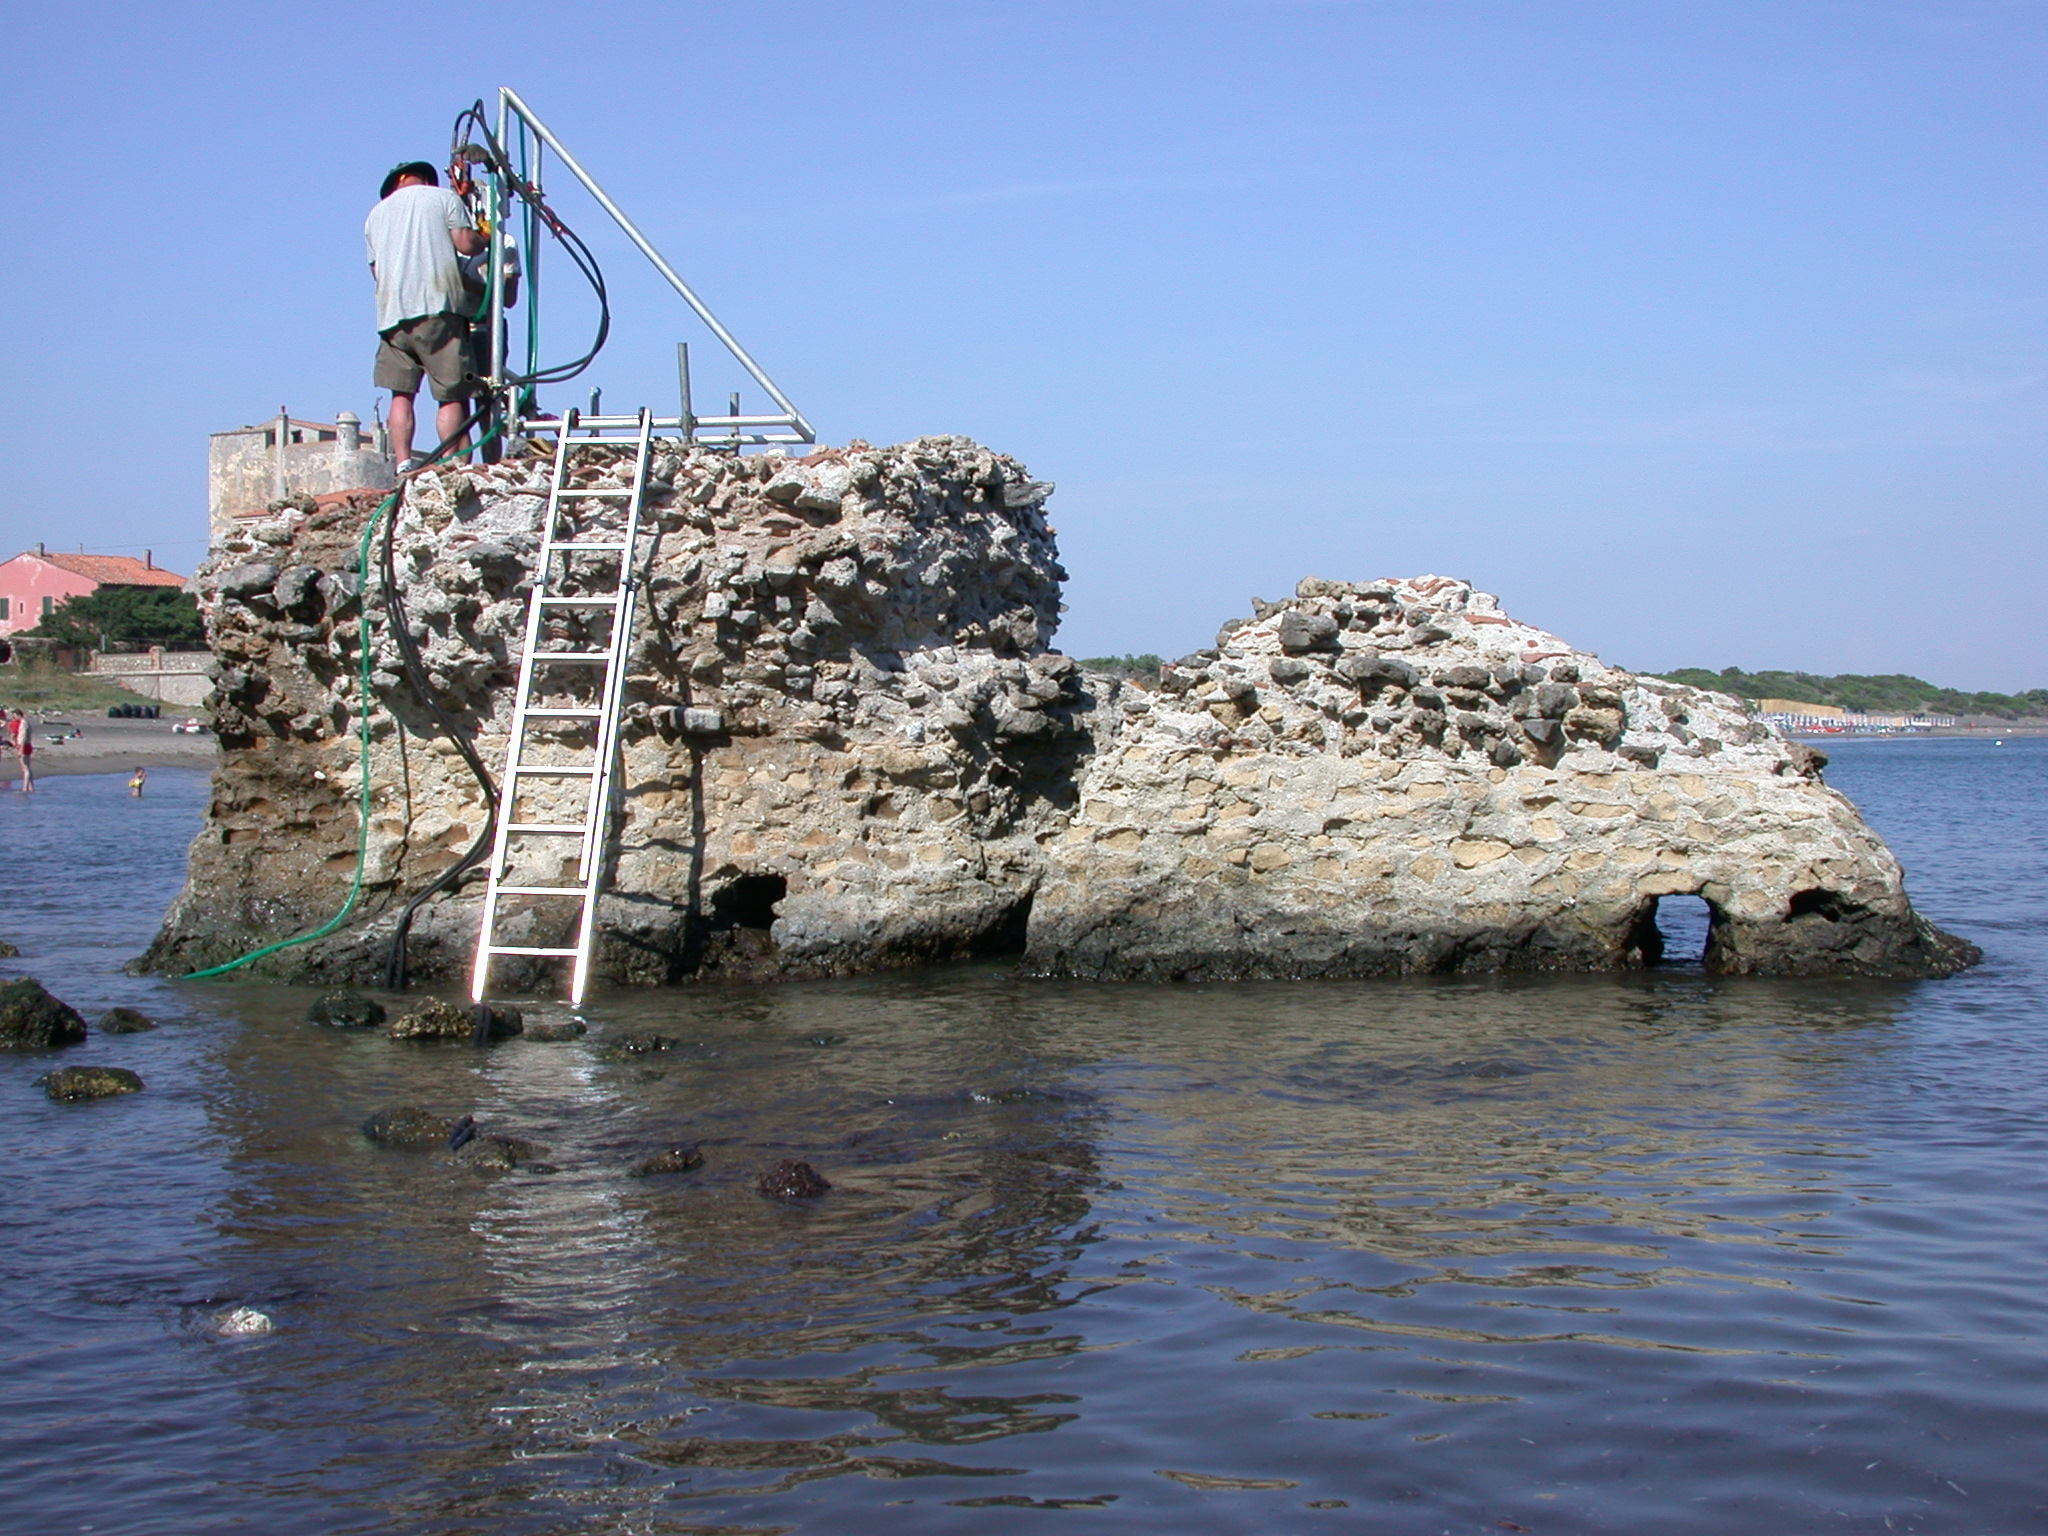 How Did Romans Make Such Solid Concrete 2000 Years Ago? Secret Unveiled